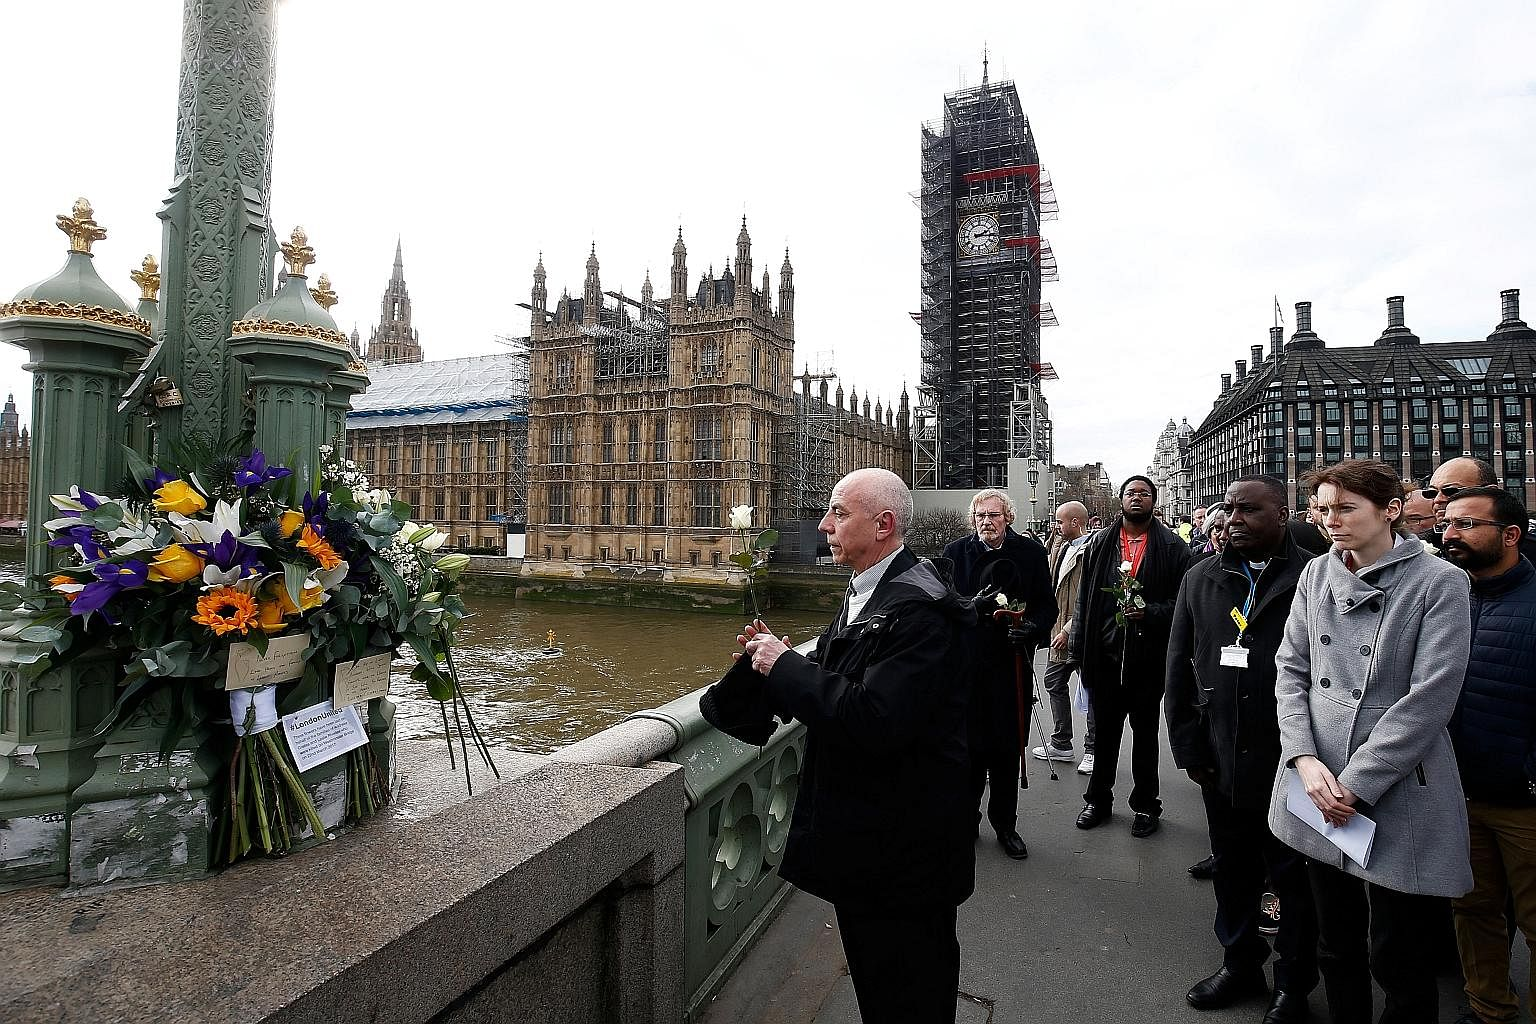 People marking the anniversary of last year's terror attack on London's Westminster Bridge.